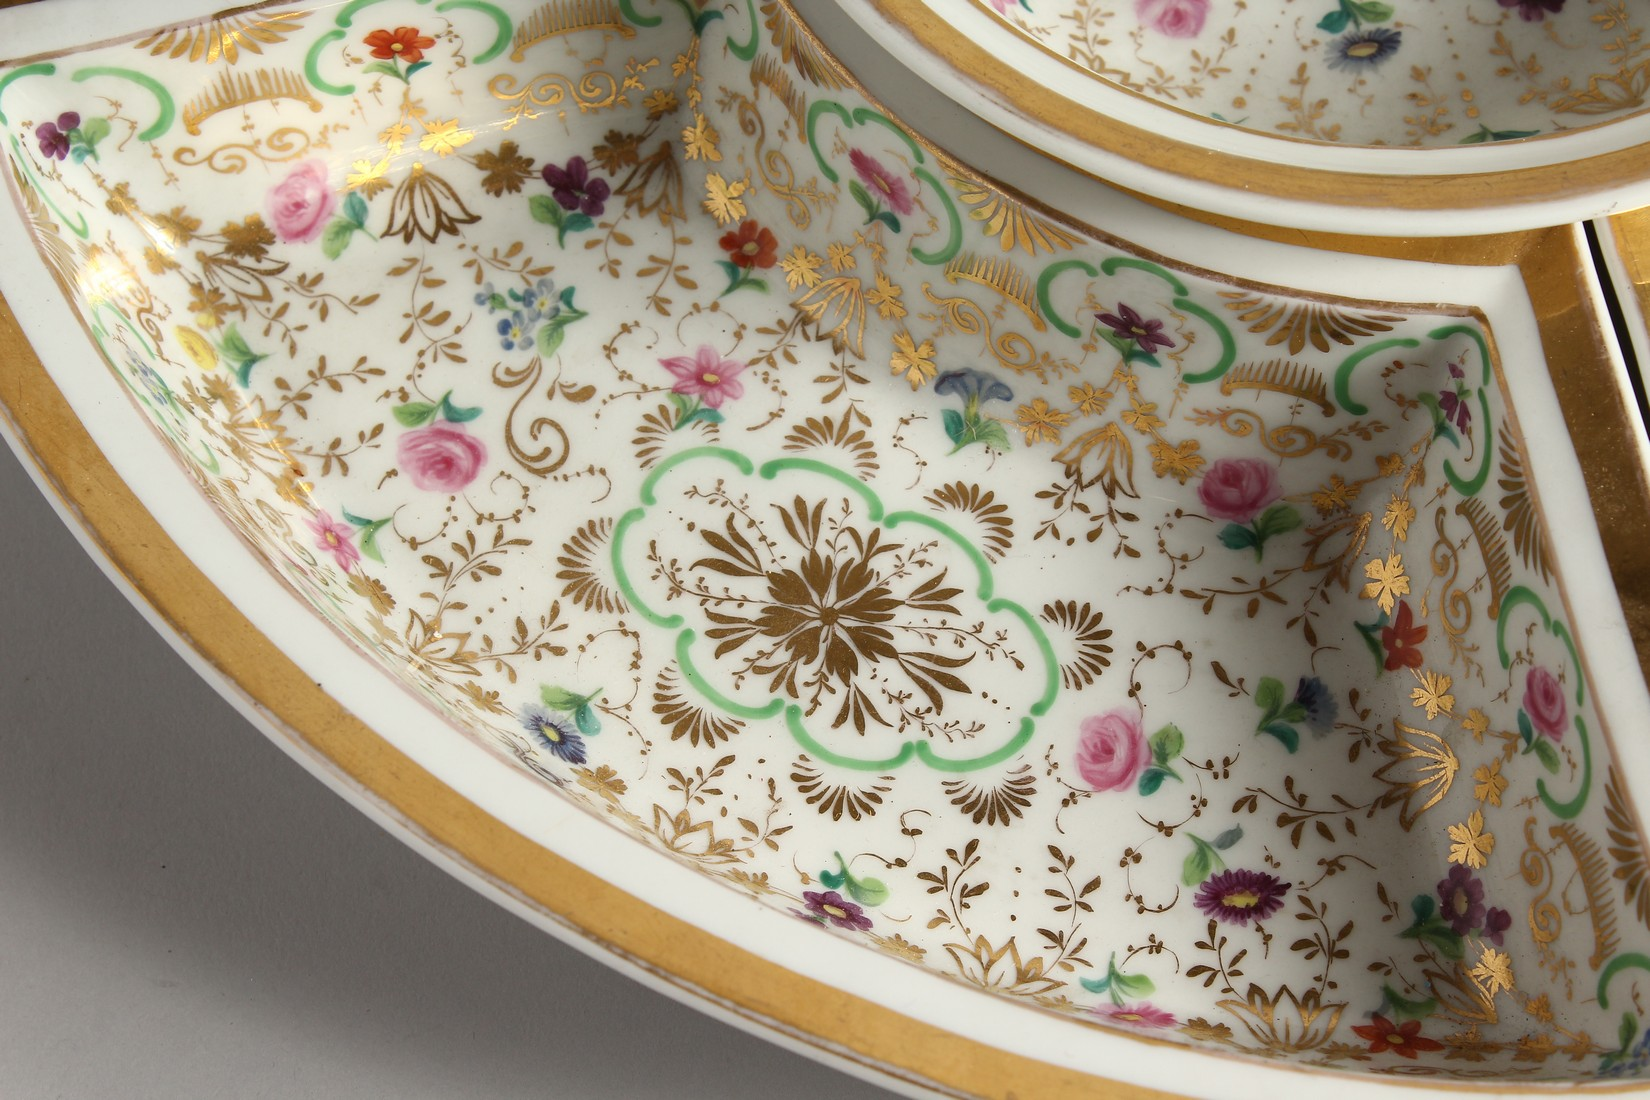 A K. P. M. PORCELAIN CIRCULAR BOWL with gilt decoration and painted with flowers. 7ins diameter - Image 5 of 9